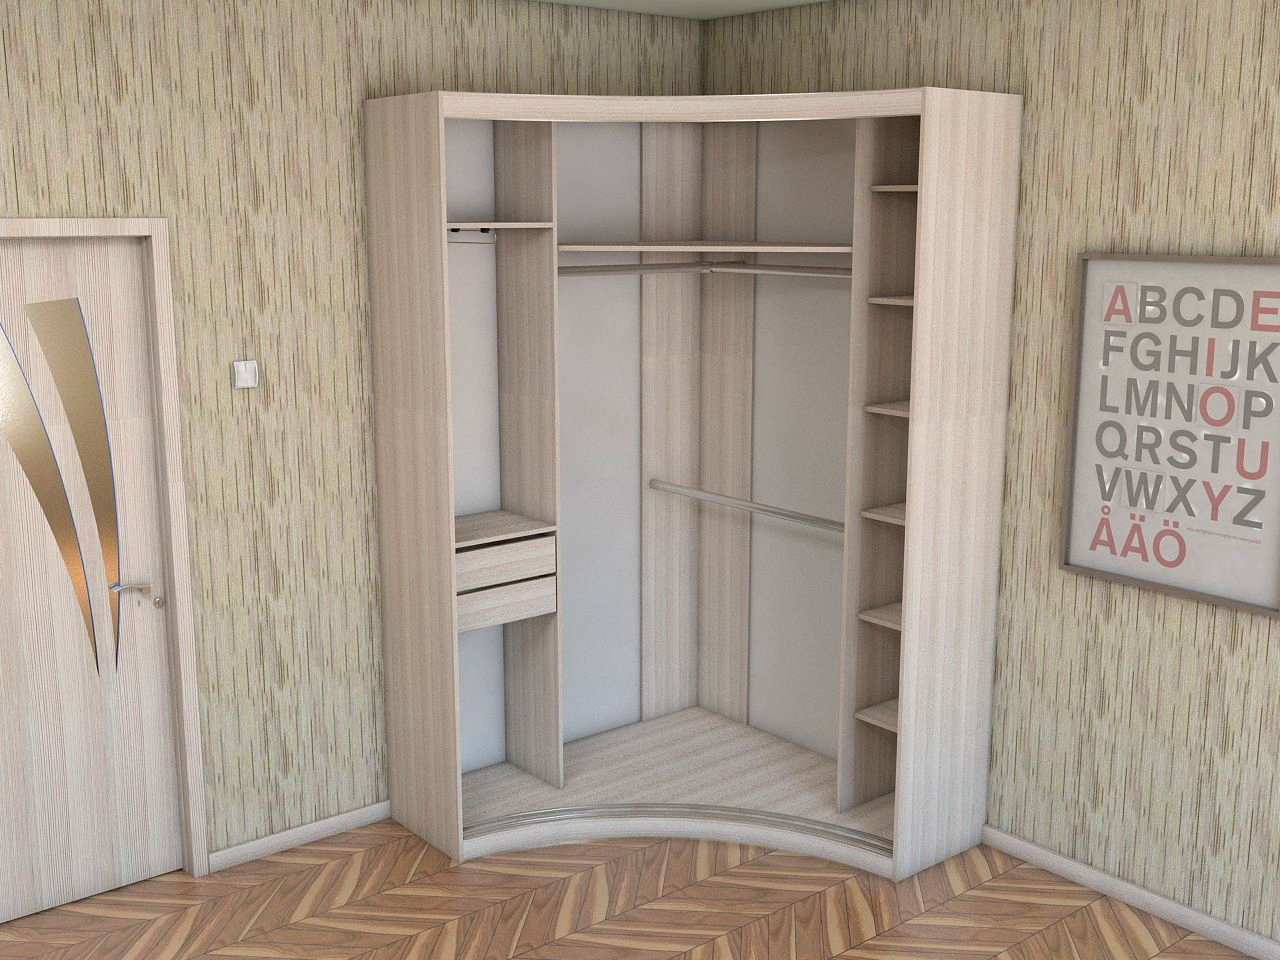 Creative%2BSmall%2BCorner%2BWall%2BCabinets%2B%252813%2529 35 Inventive Small Nook Wall Cupboards Interior